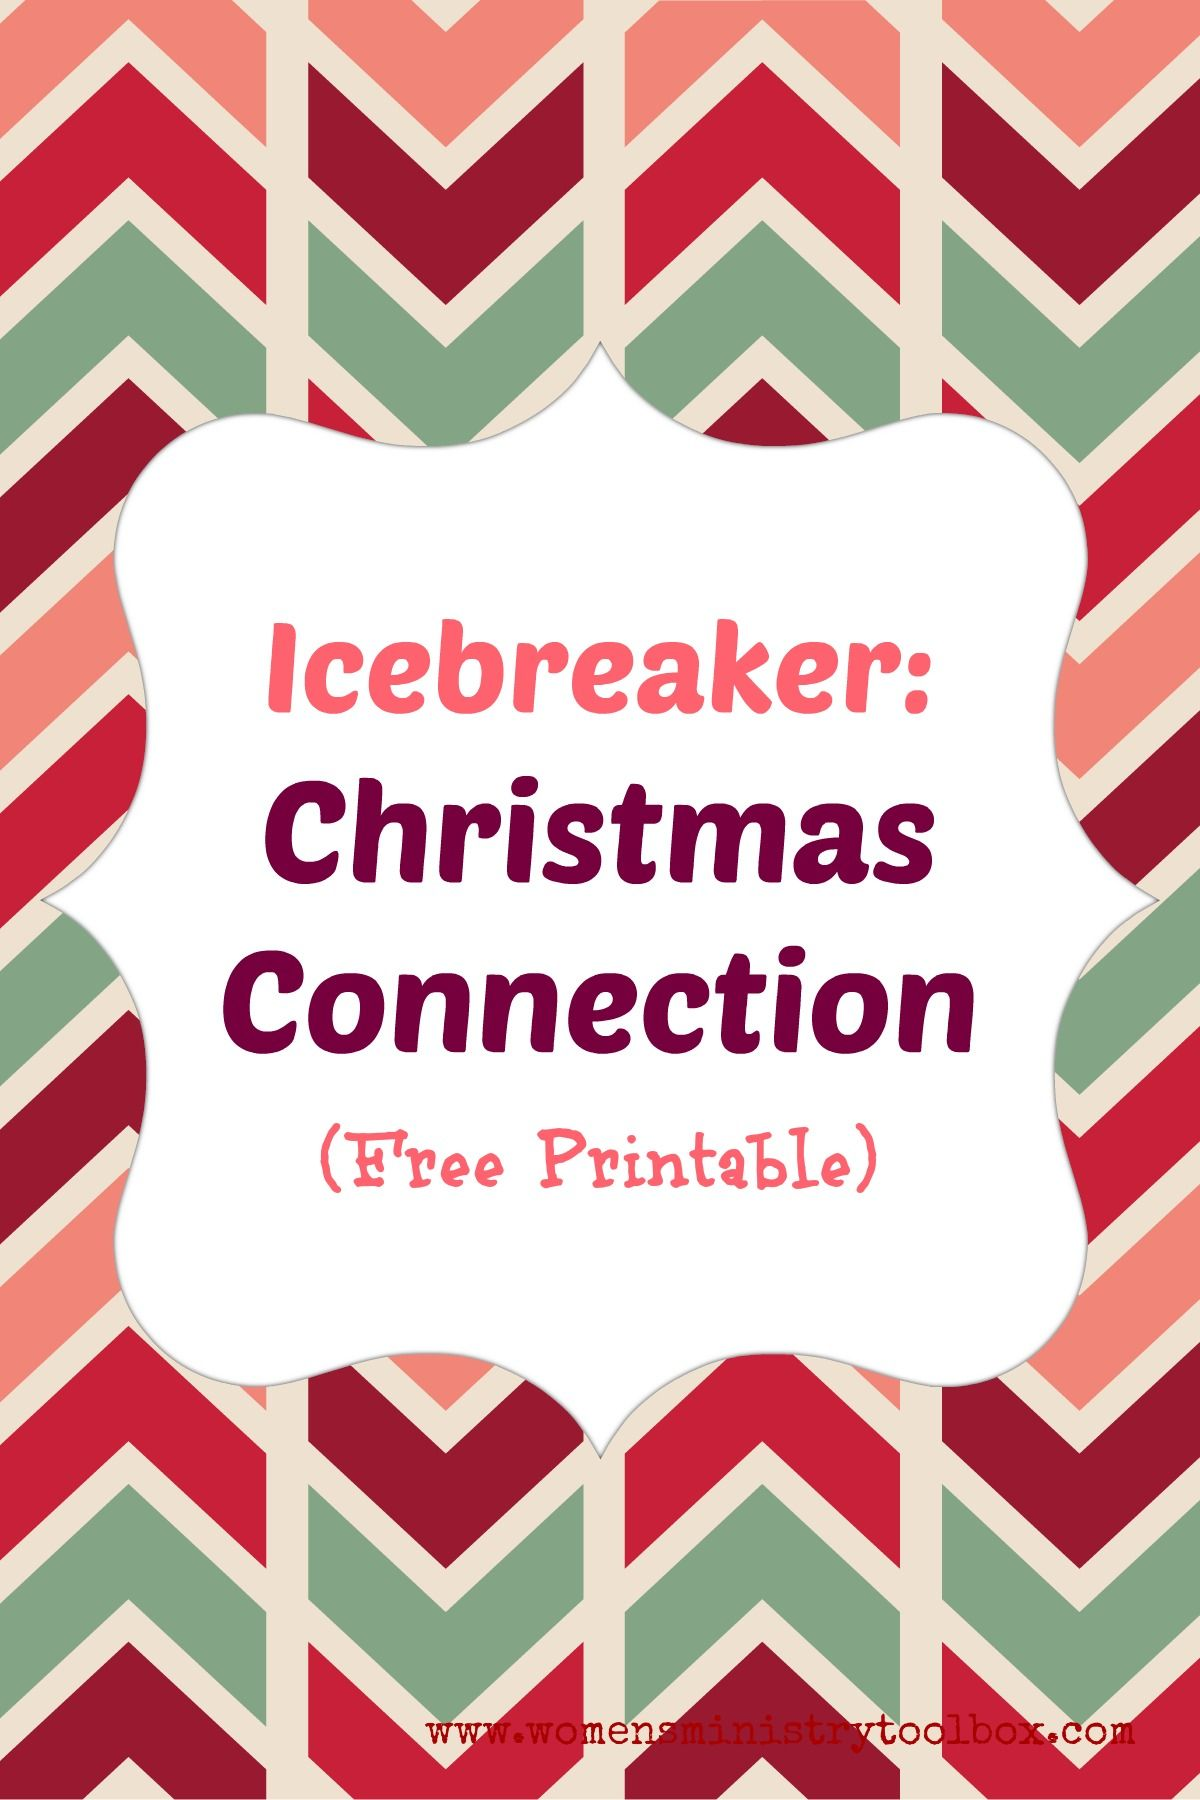 Icebreaker Christmas Connection Free Printable